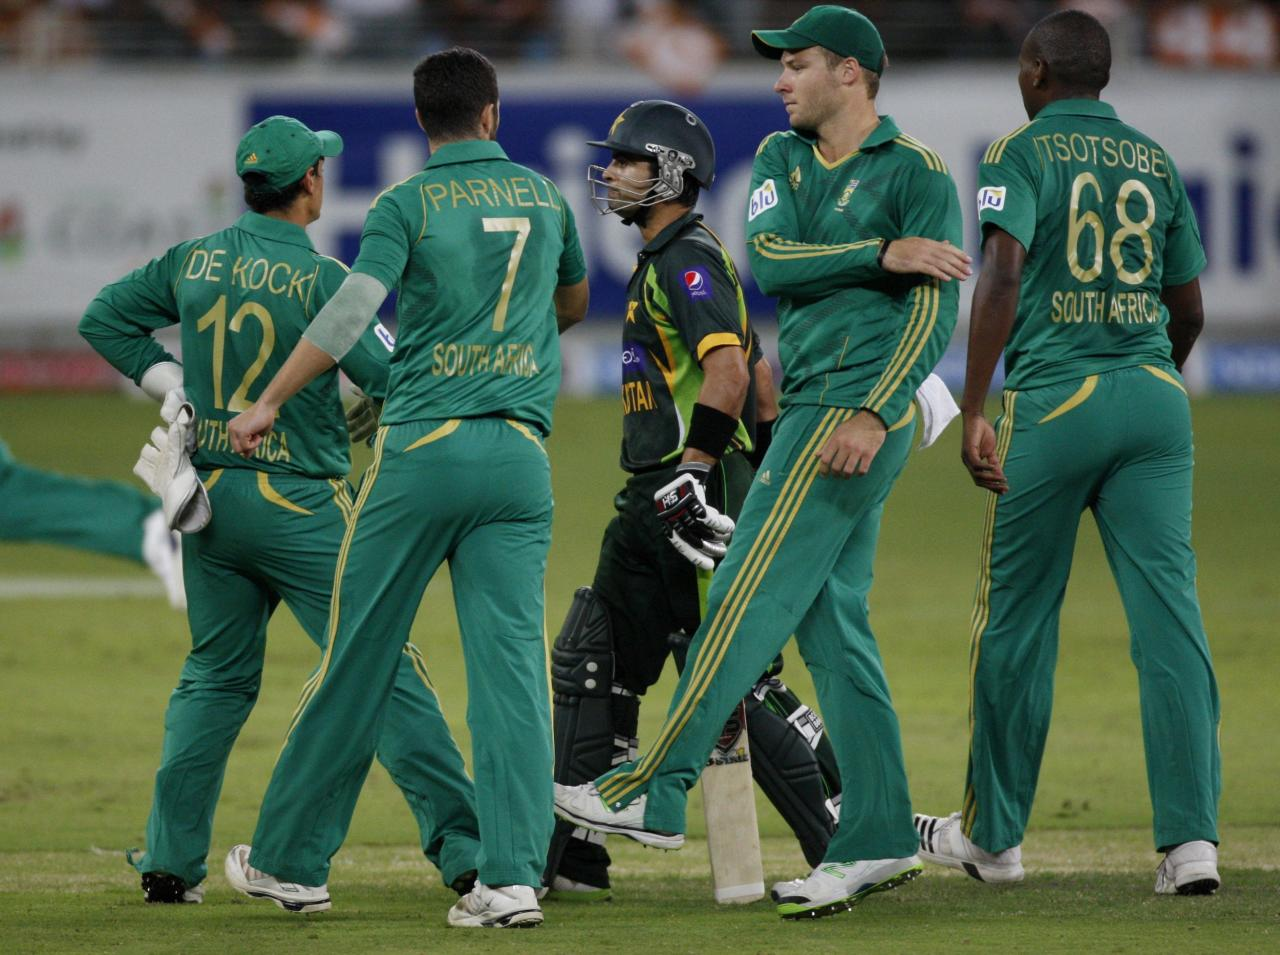 South African players celebrate the wicket of Pakistan's Ahmed Shehzad (C) during their second Twenty20 international cricket match in Dubai November 15, 2013. REUTERS/Nikhil Monteiro(UNITED ARAB EMIRATES - Tags: SPORT CRICKET)